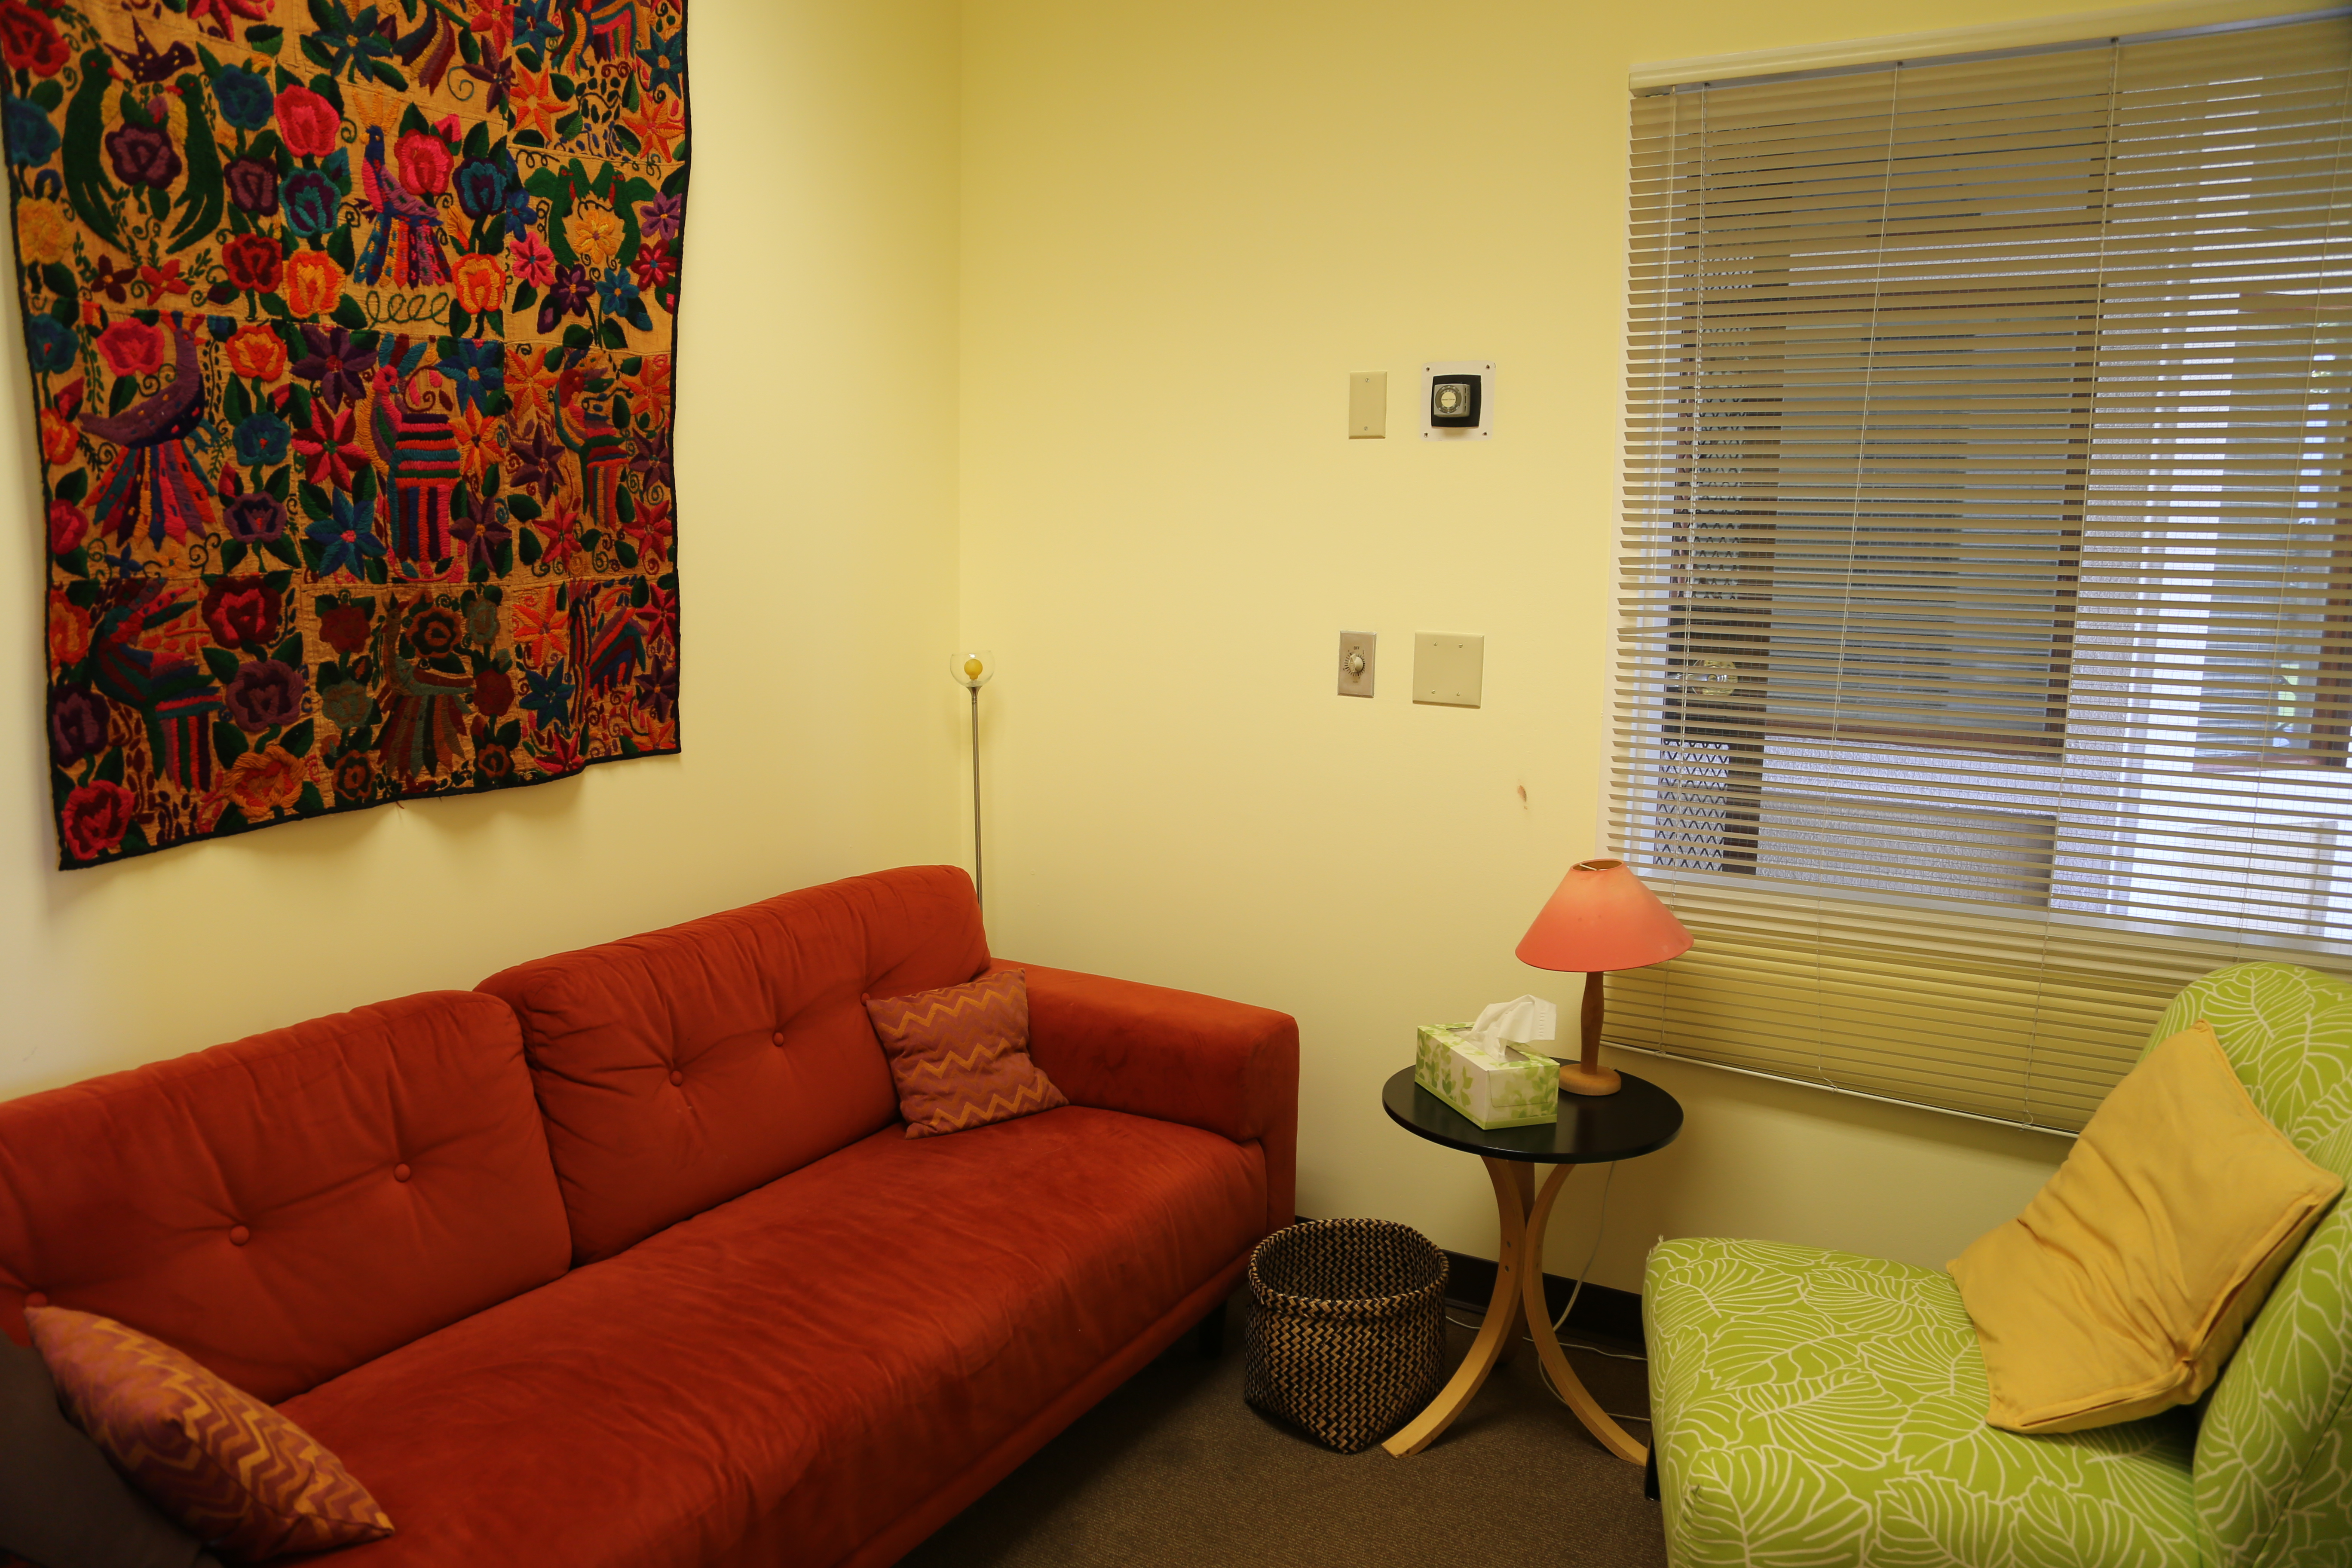 Orange Therapy Room at PTR's Mosaic Healing Center